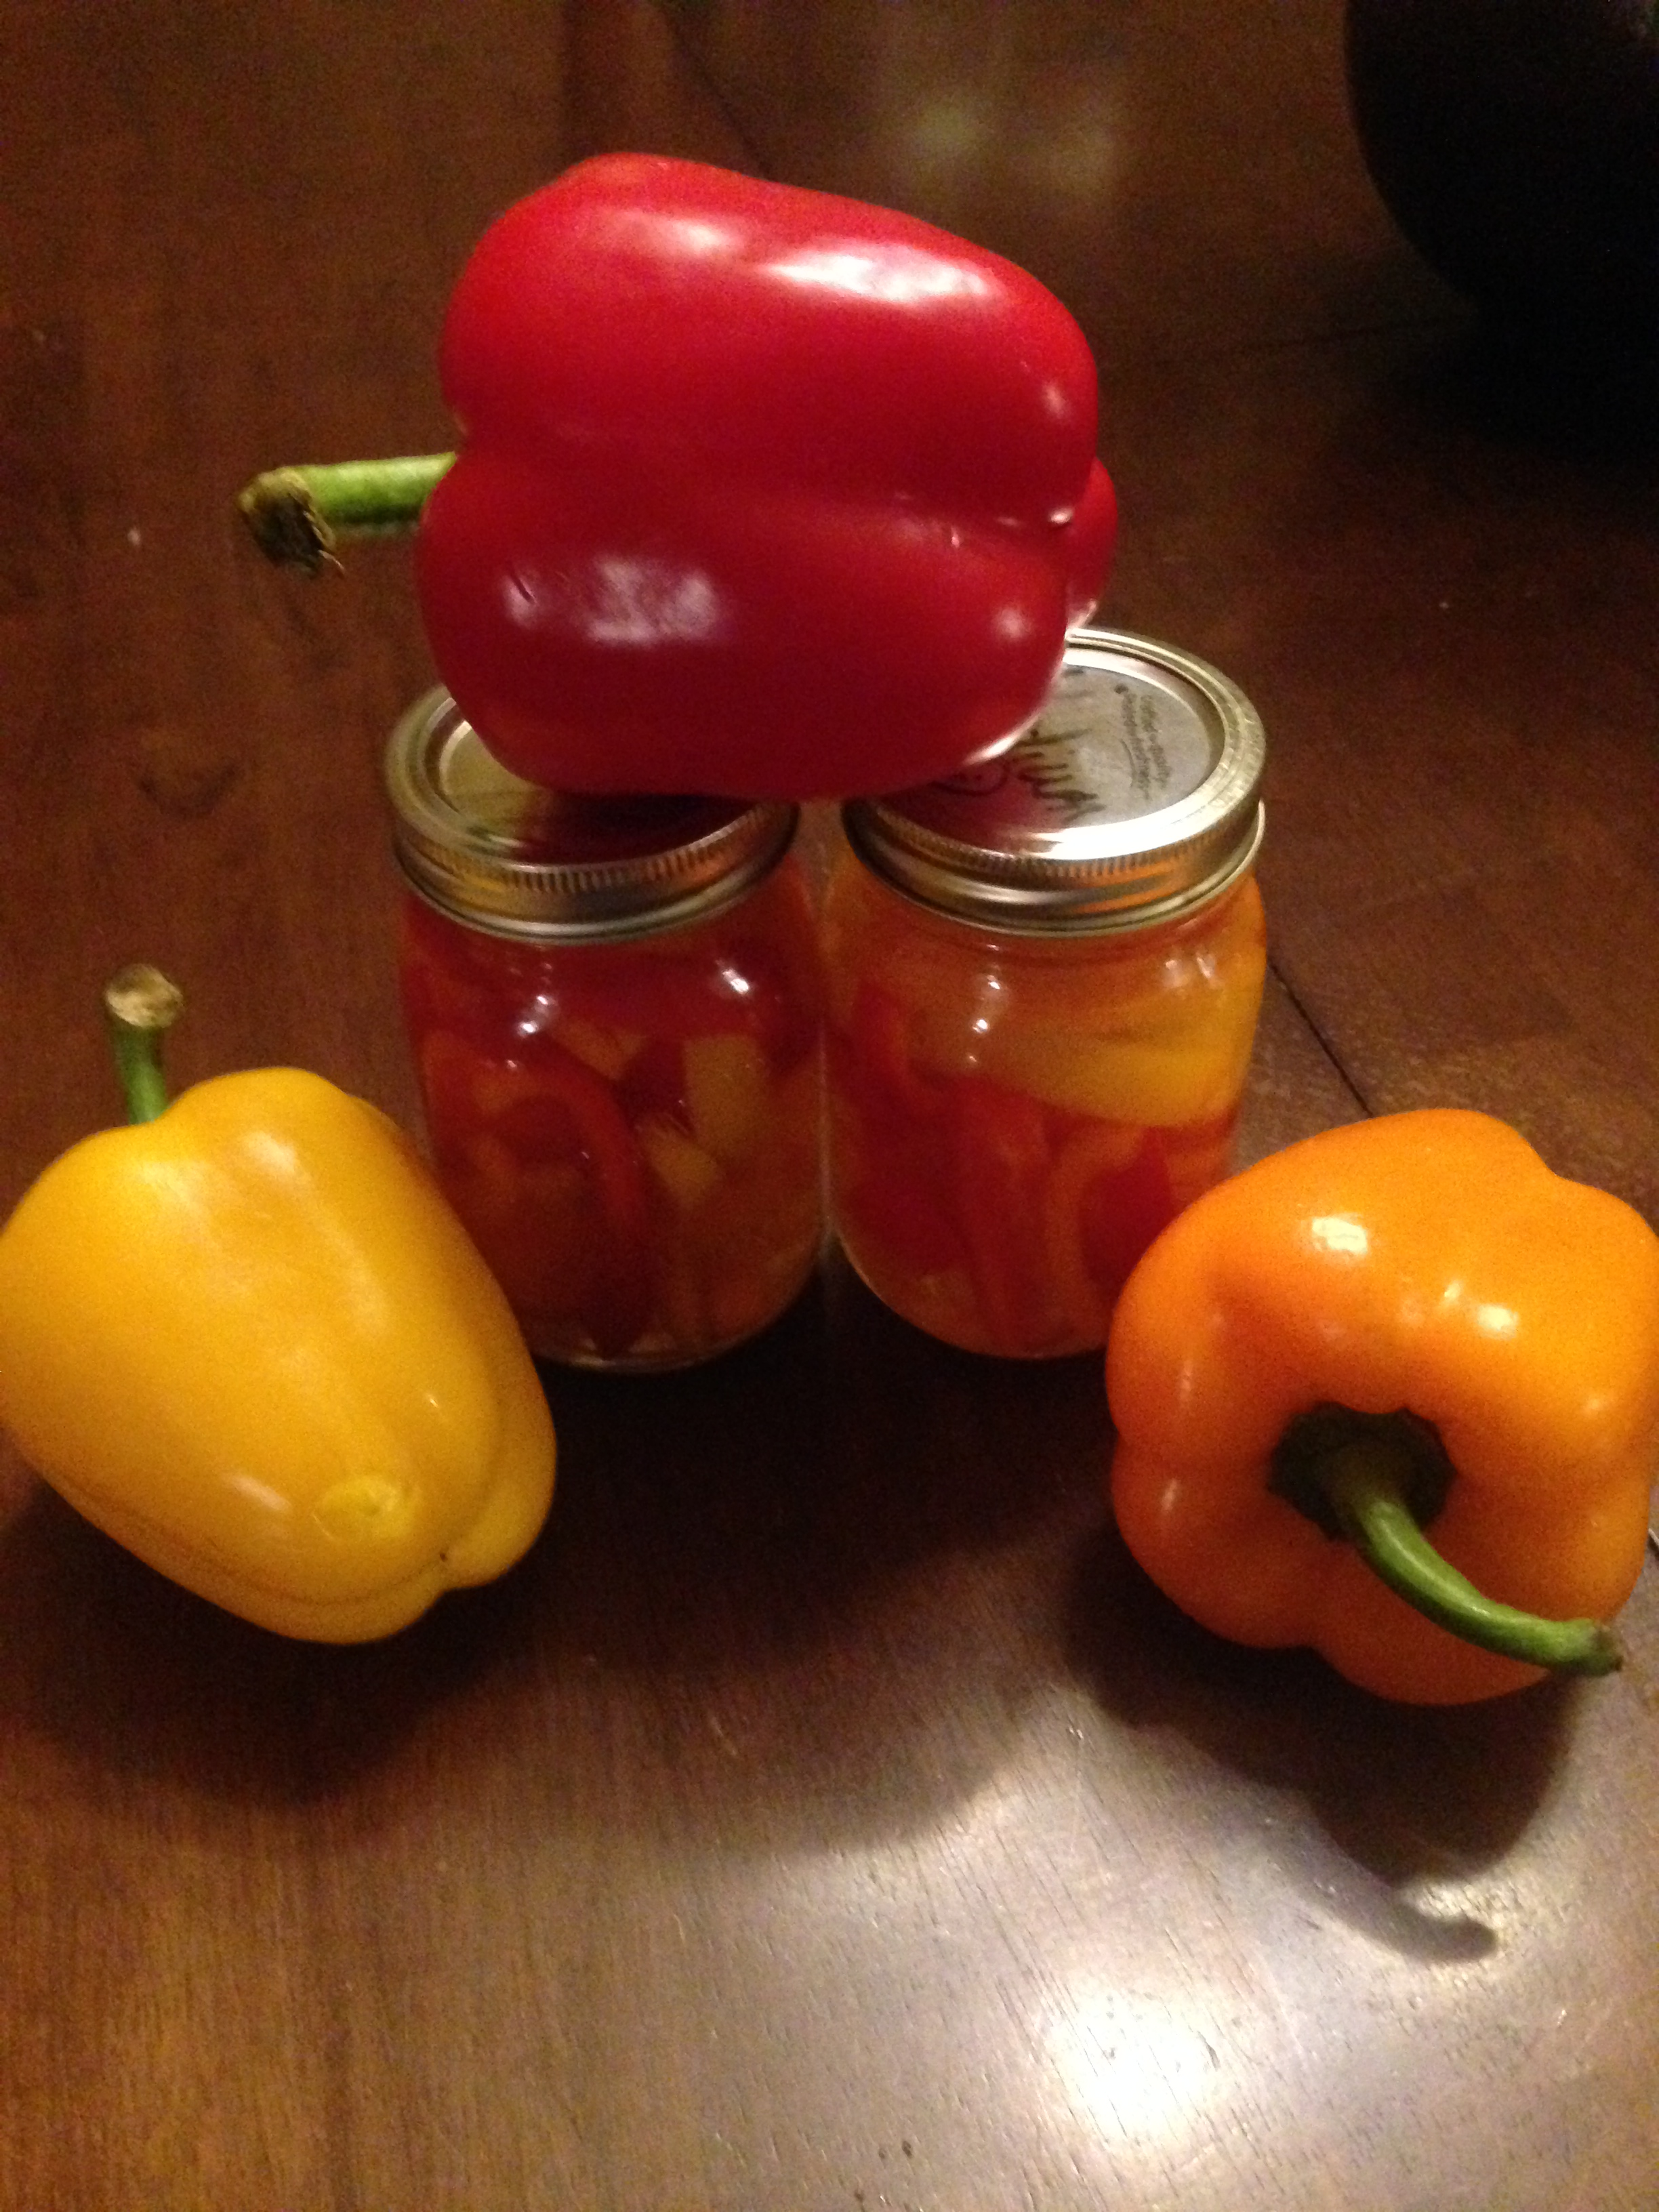 Quick Easy Pickled Bell Peppers #pickled #bellpepers #easy #recipe #red #orange #yellow